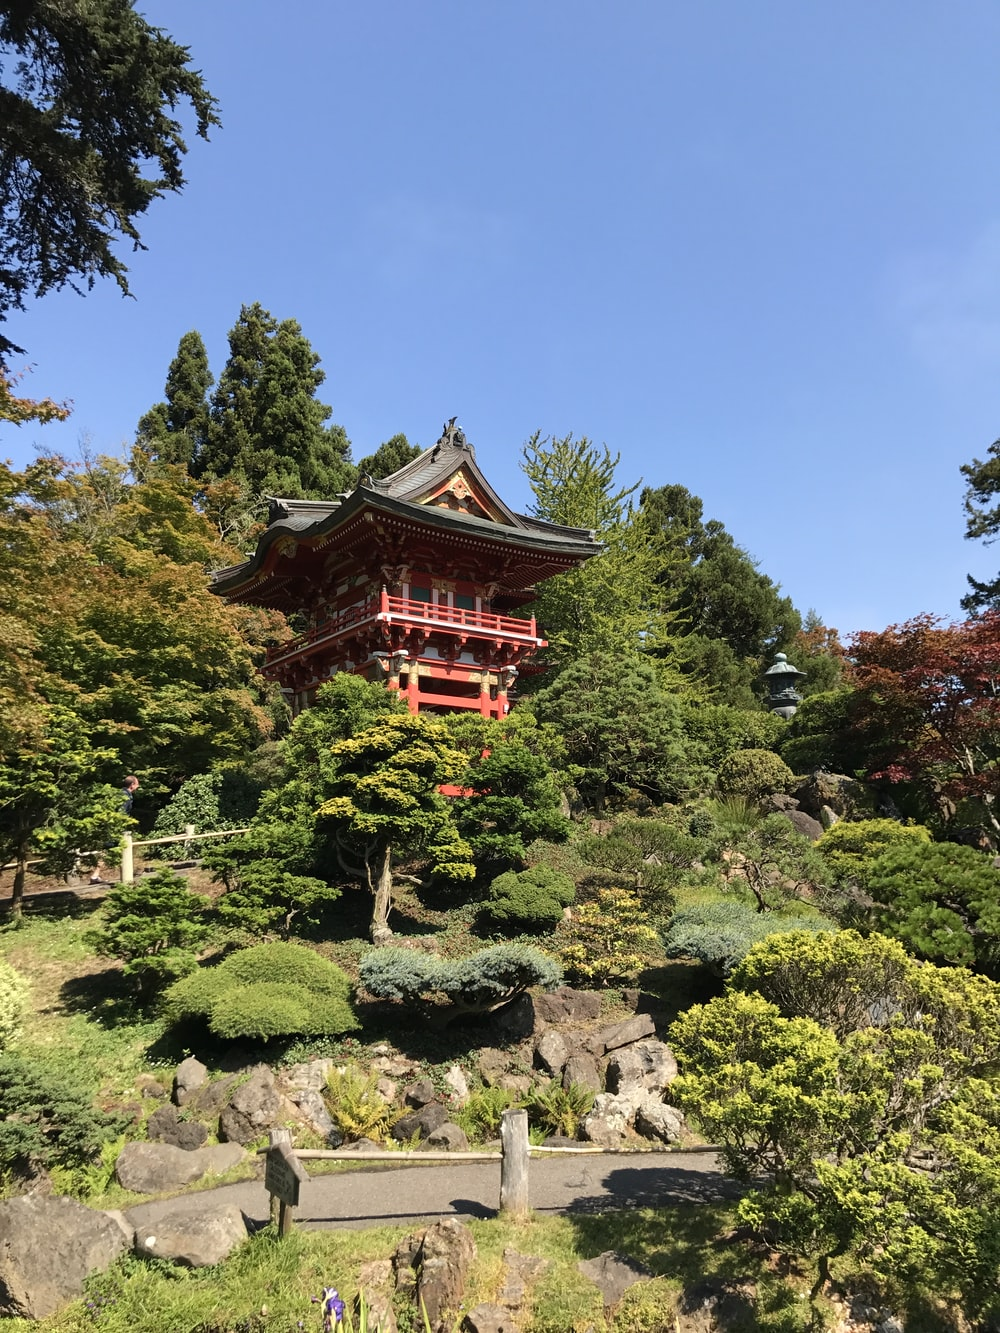 red and black pagoda temple surrounded by green trees under blue sky during daytime